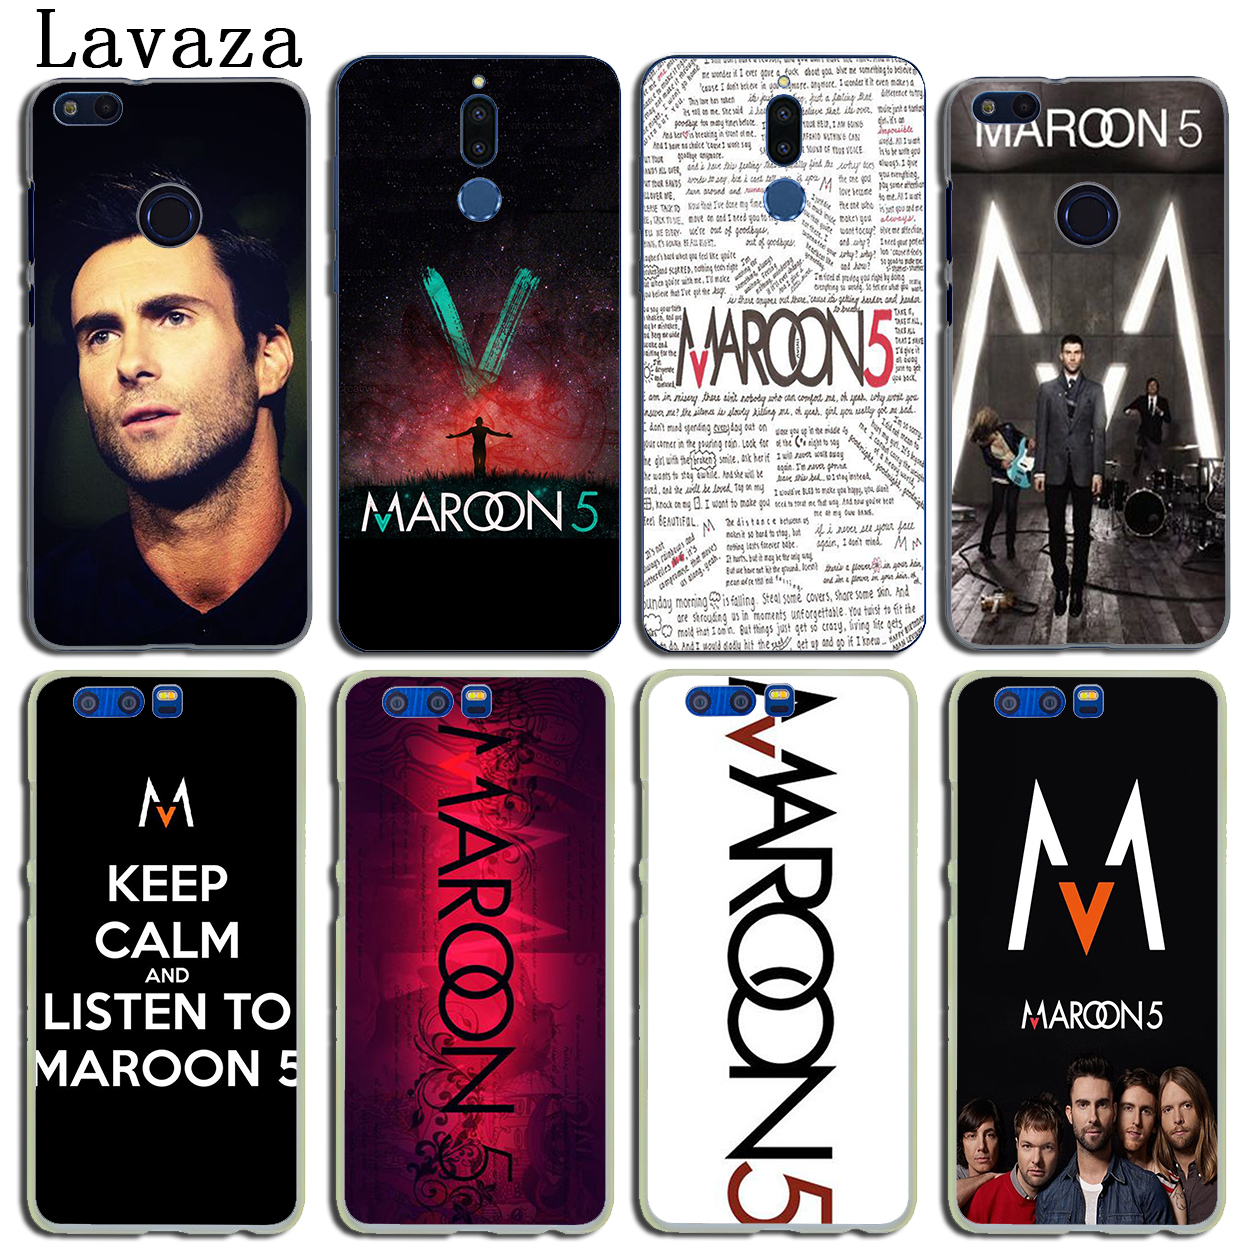 Lavaza maroon 5 Hard Phone Case for Huawei Y6 Y5 Y3 II Y7 2017 2018 Nova 2 Plus 2S 2i Honor 10 9 8 Lite 7 7X 6 6A 6X 6C Pro